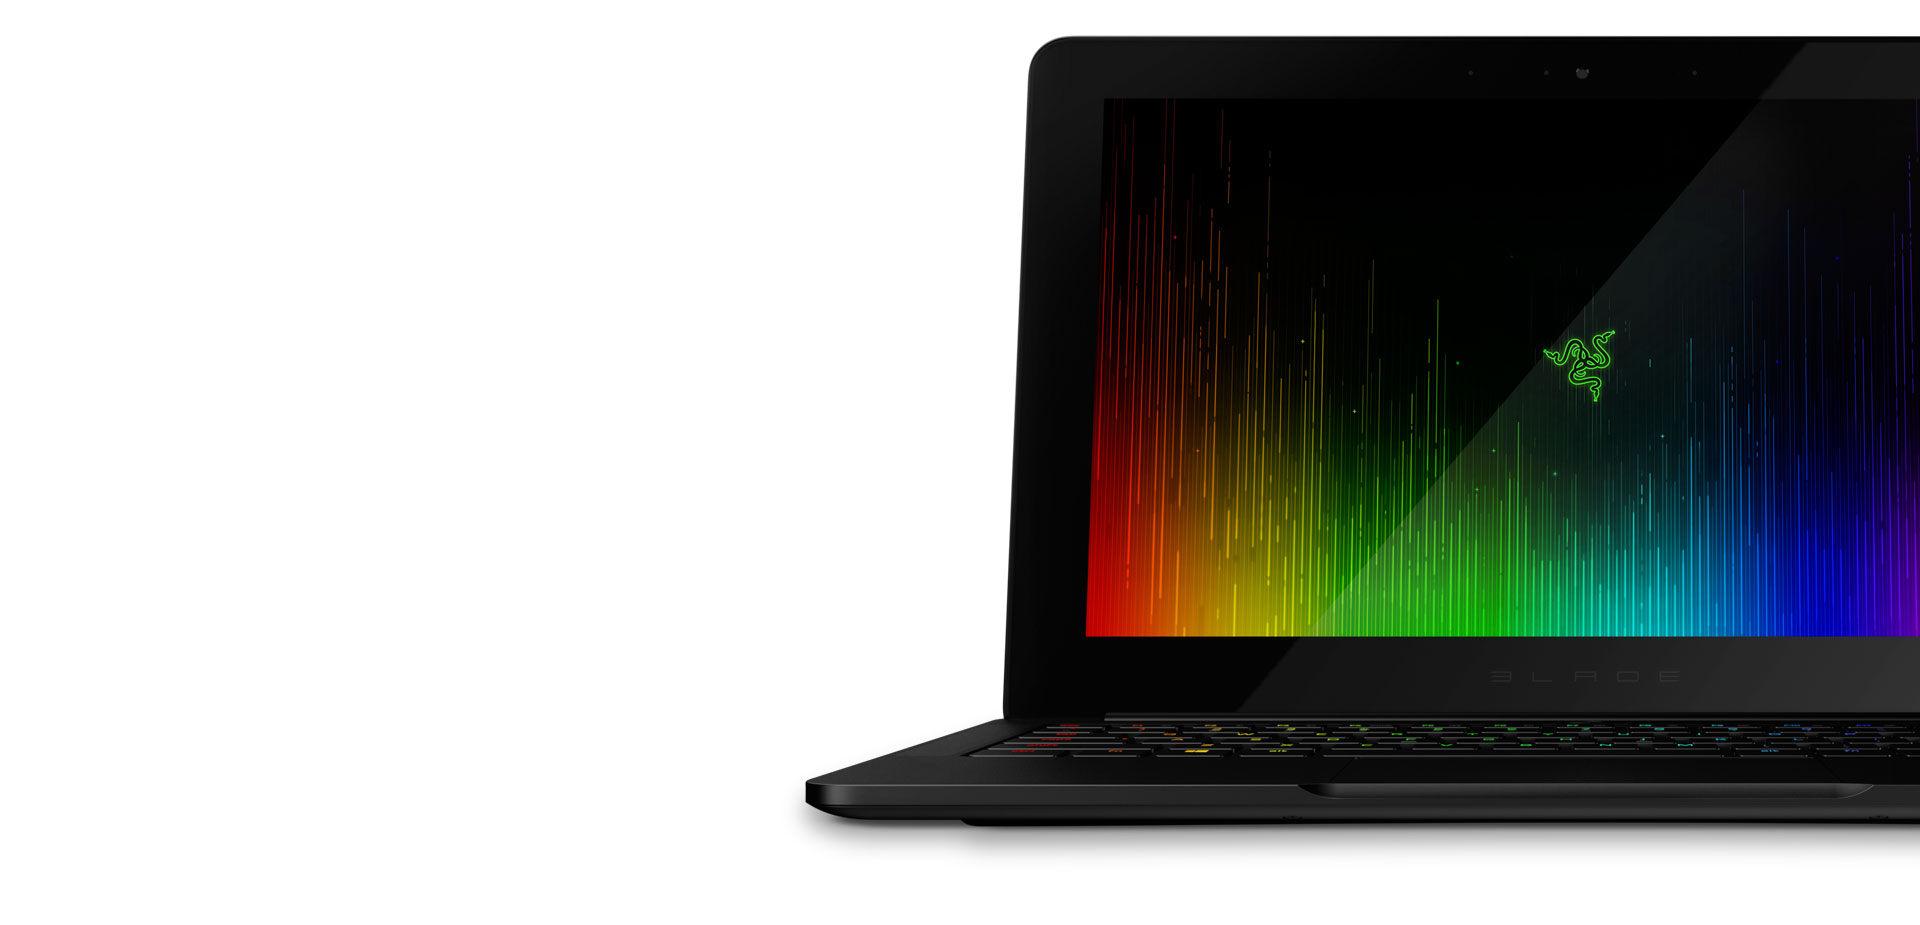 razer-blade-izgo-touch-screen-bg